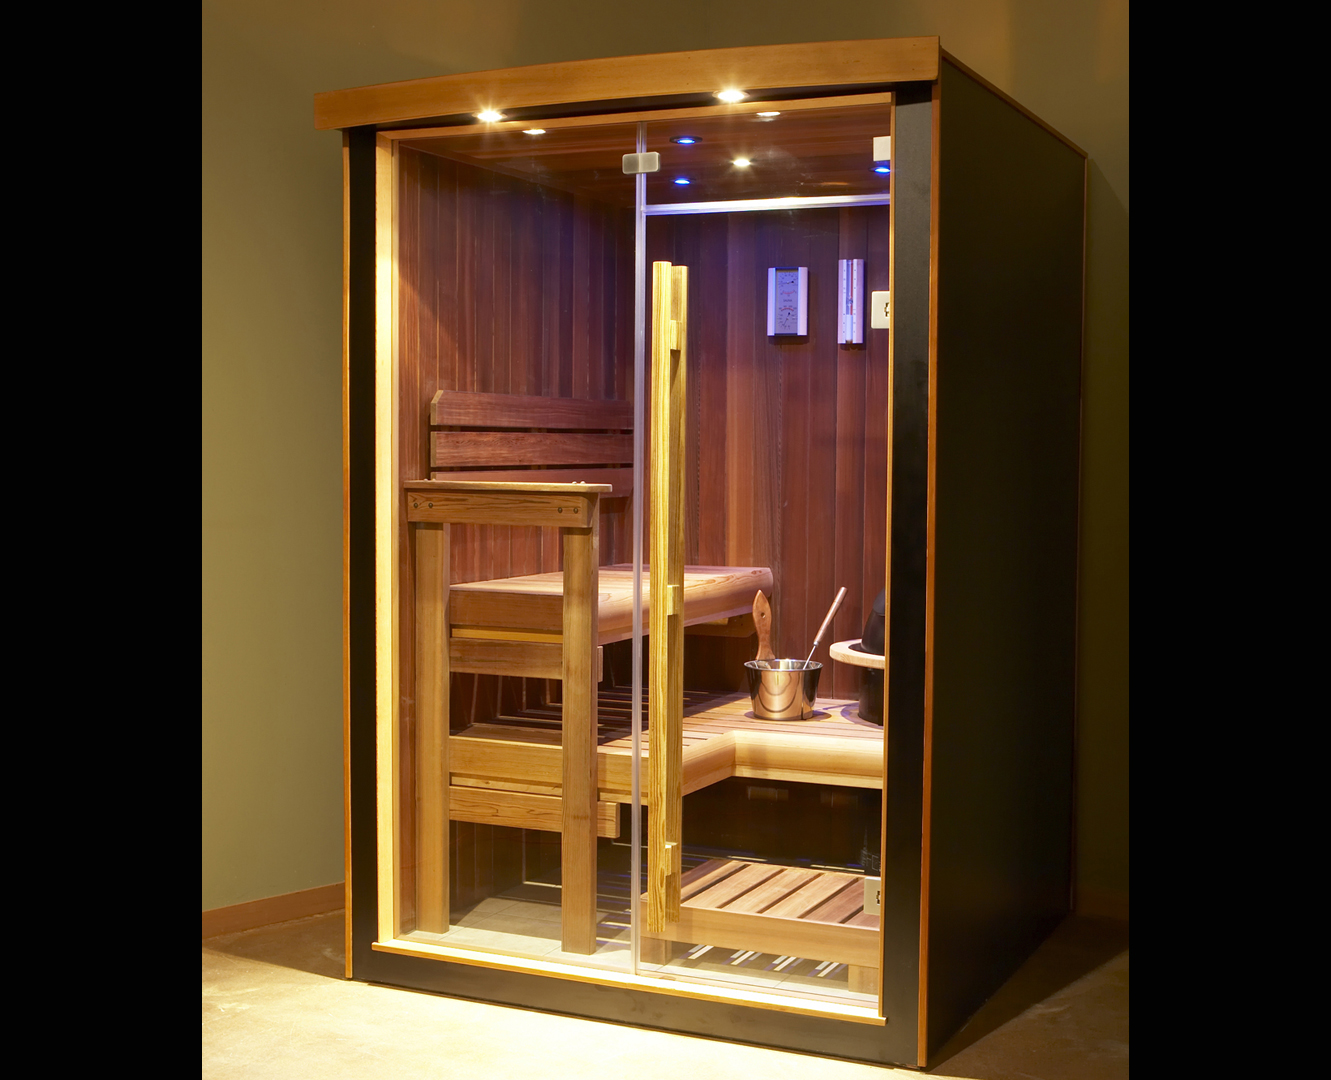 Helo Sauna A Review Of Helo Saunas - One Of The Oldest And Largest In ...